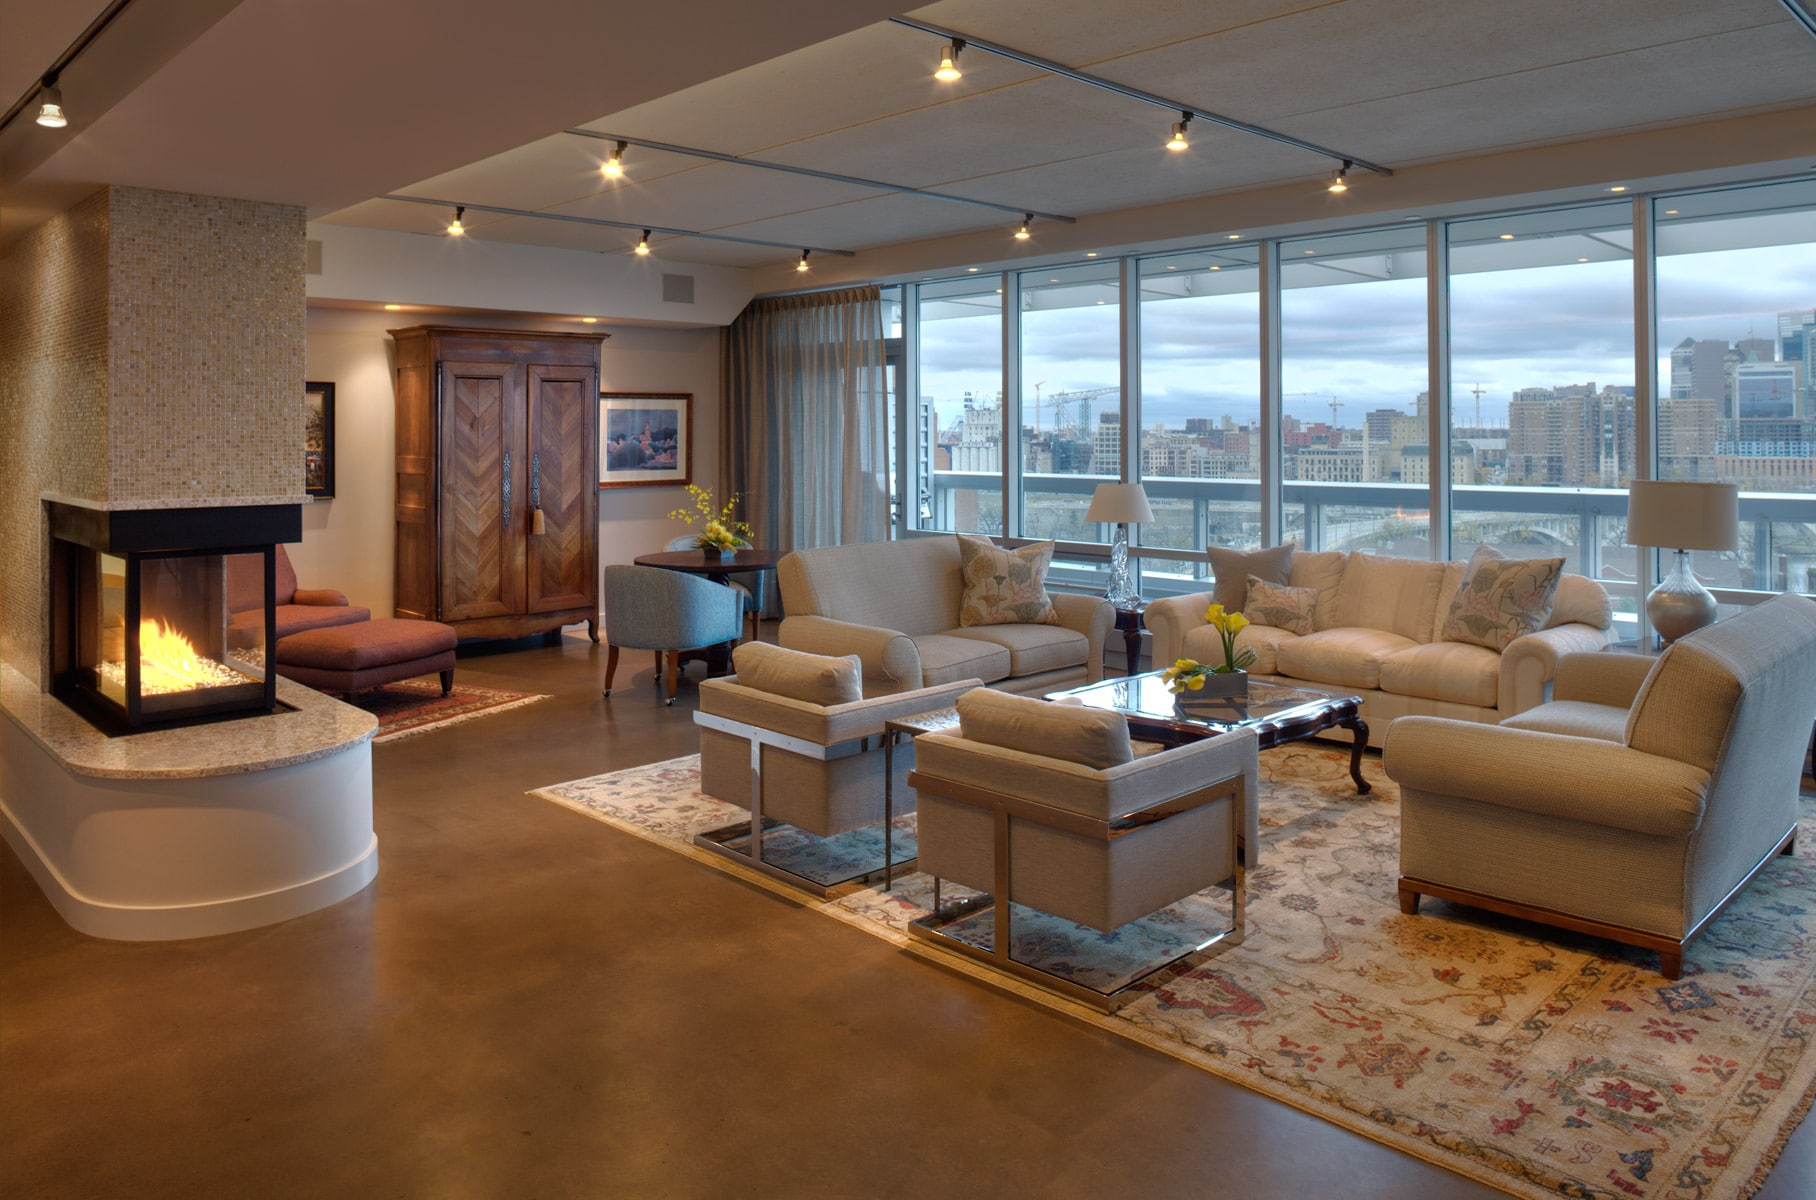 Distinctive-Penthouse-Living-Room-Minneapolis-interior-designer.jpg